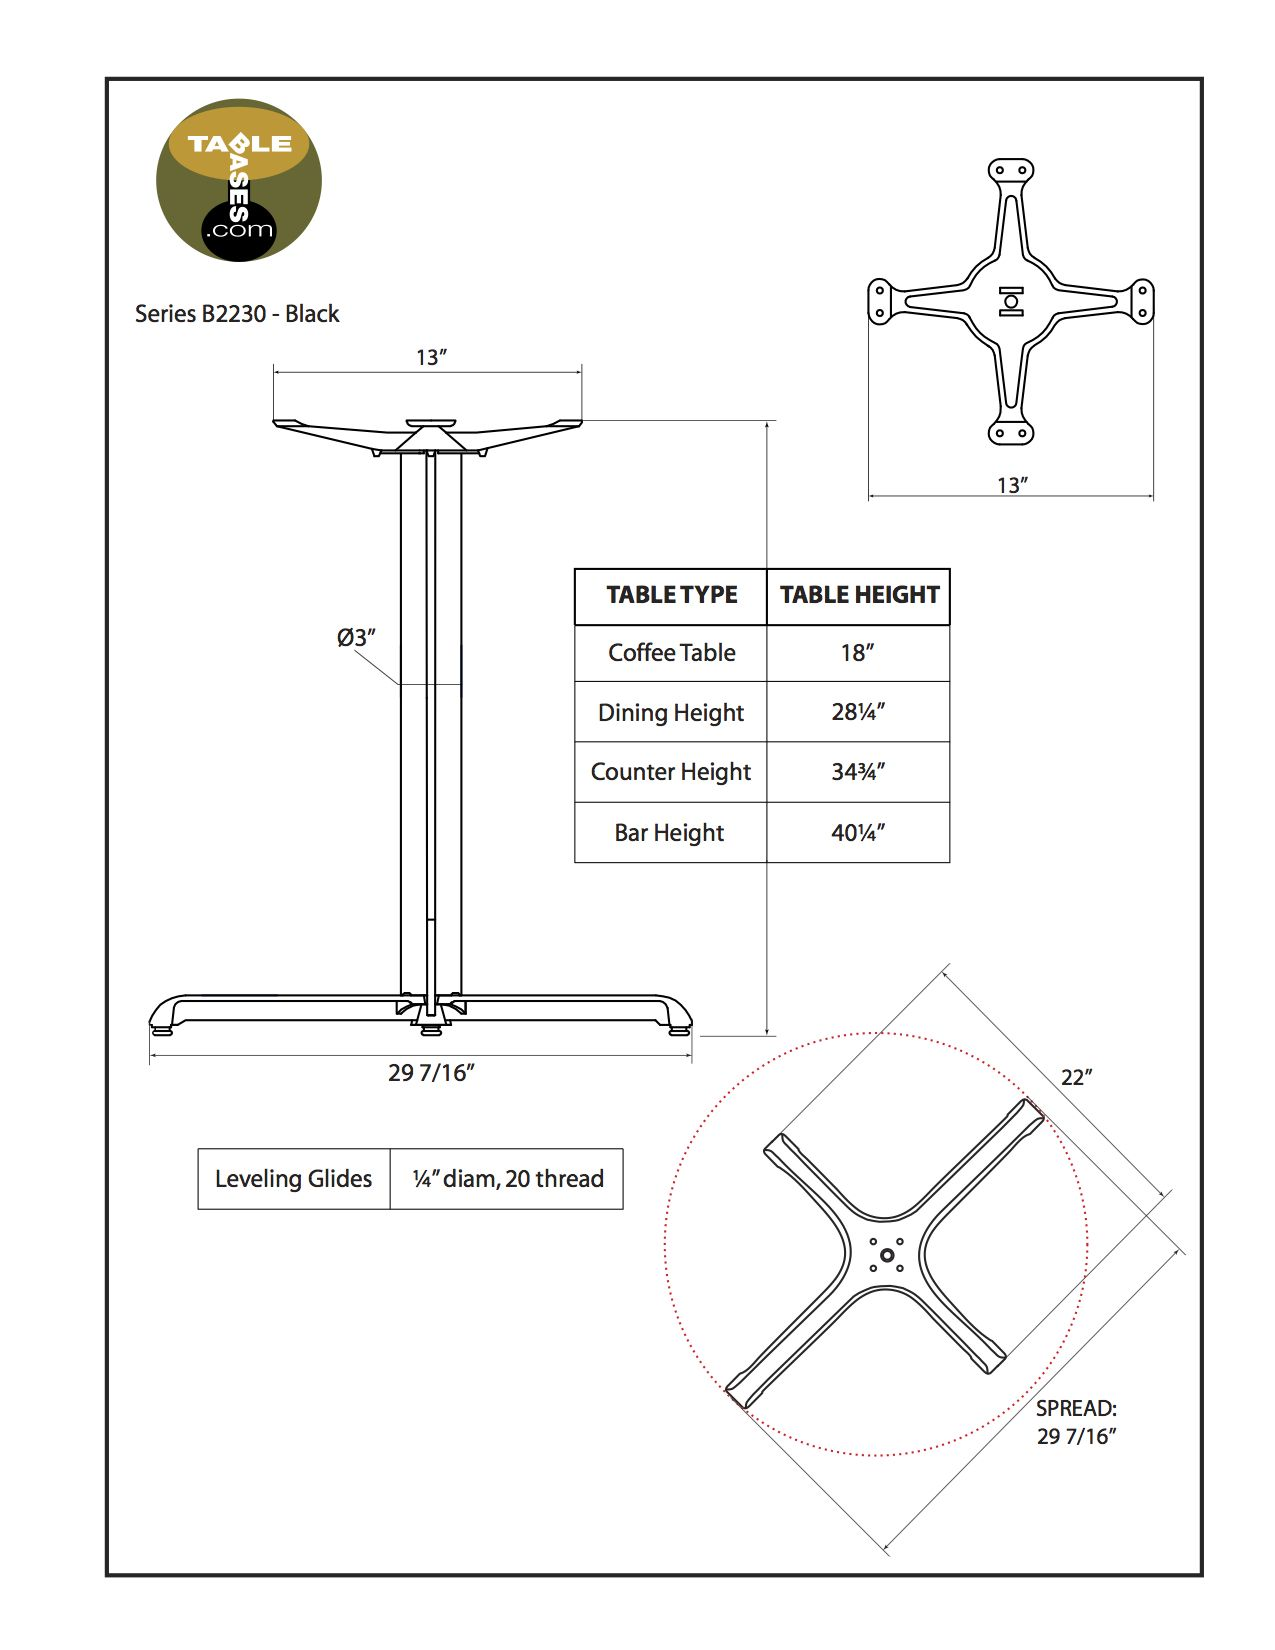 B2230 Black Table Base - Specifications